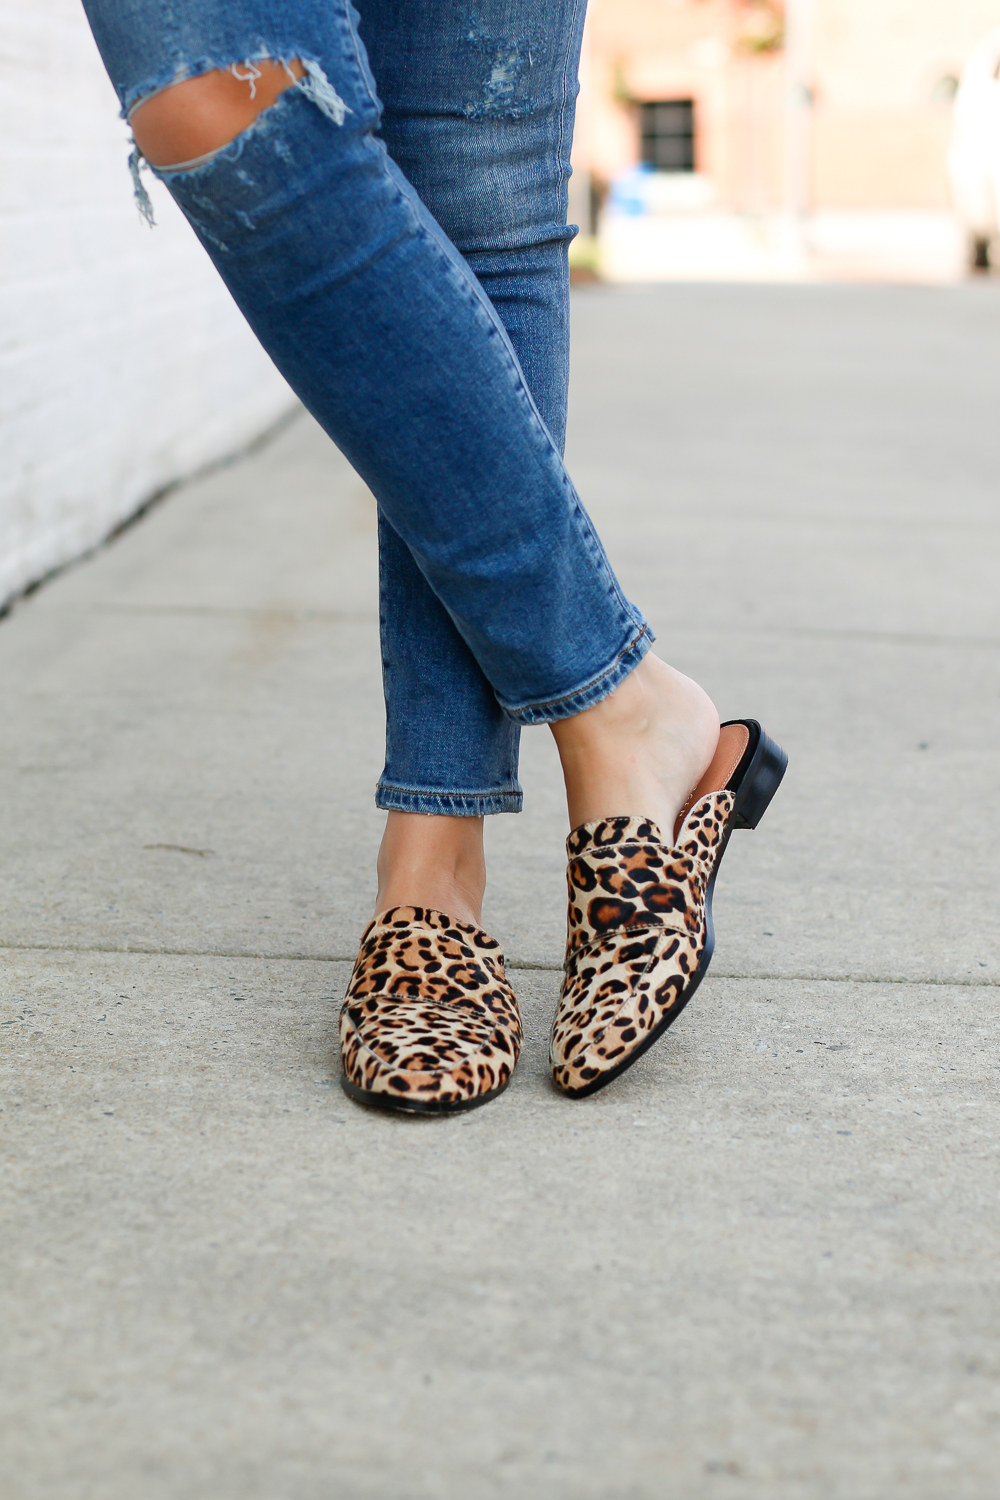 LEOPARD PRINT SLIDES FOR FALL